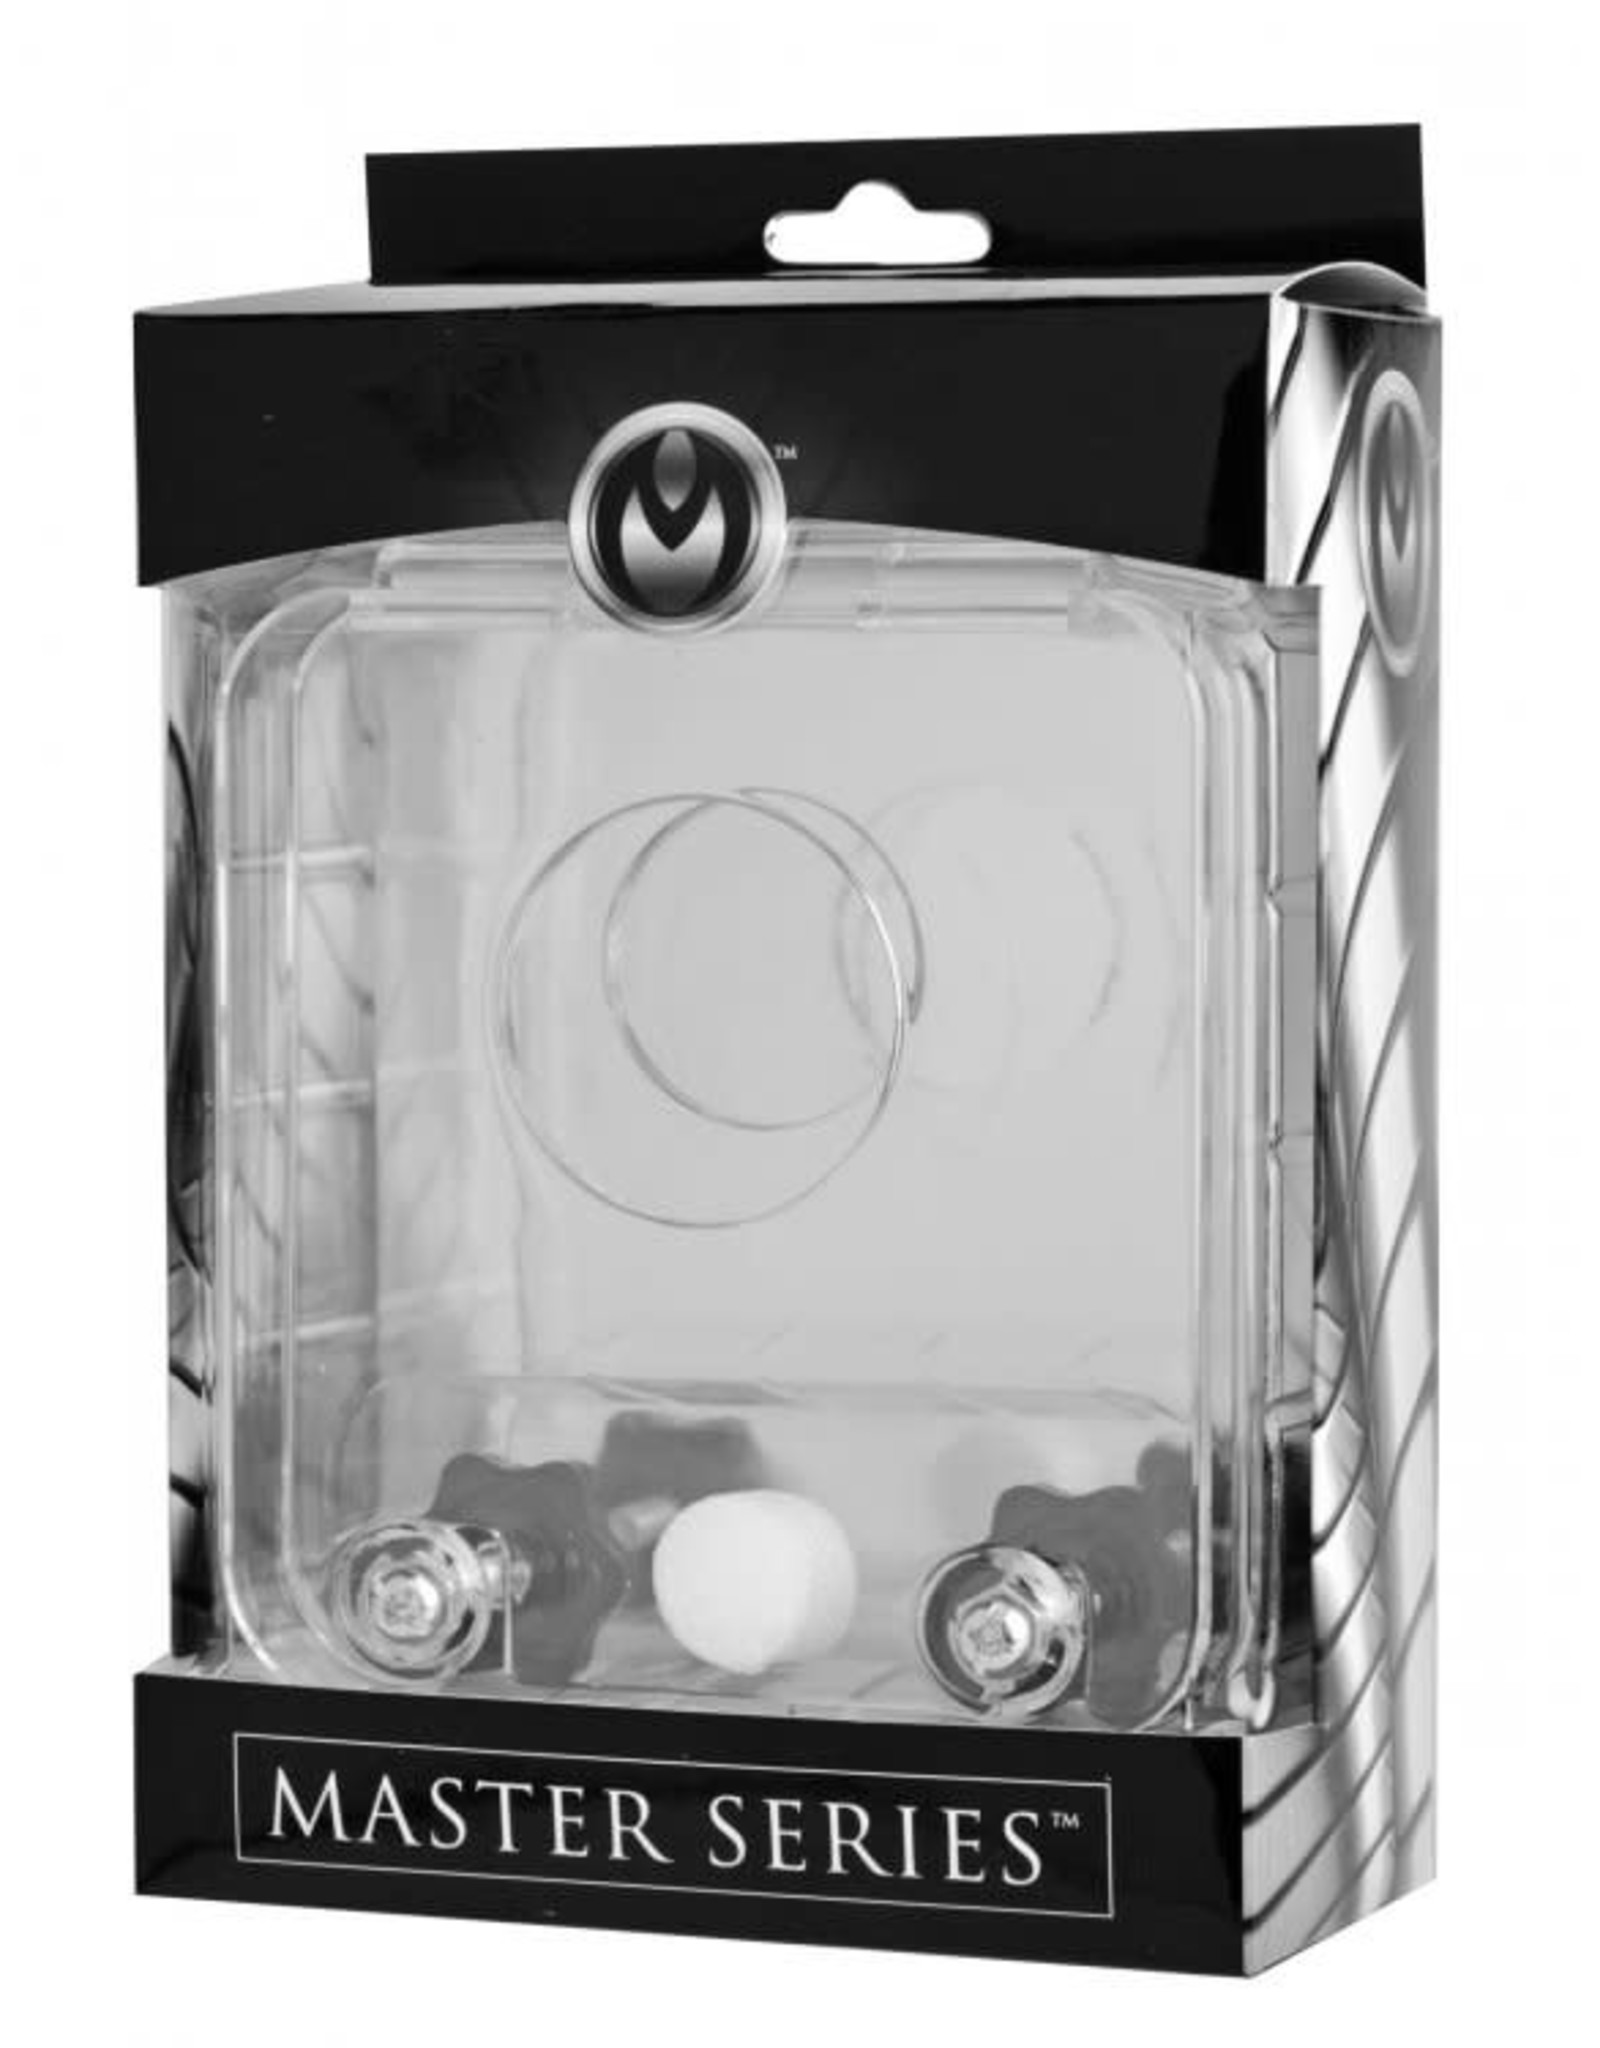 Master Series Master Series Cock and Ball Crusher